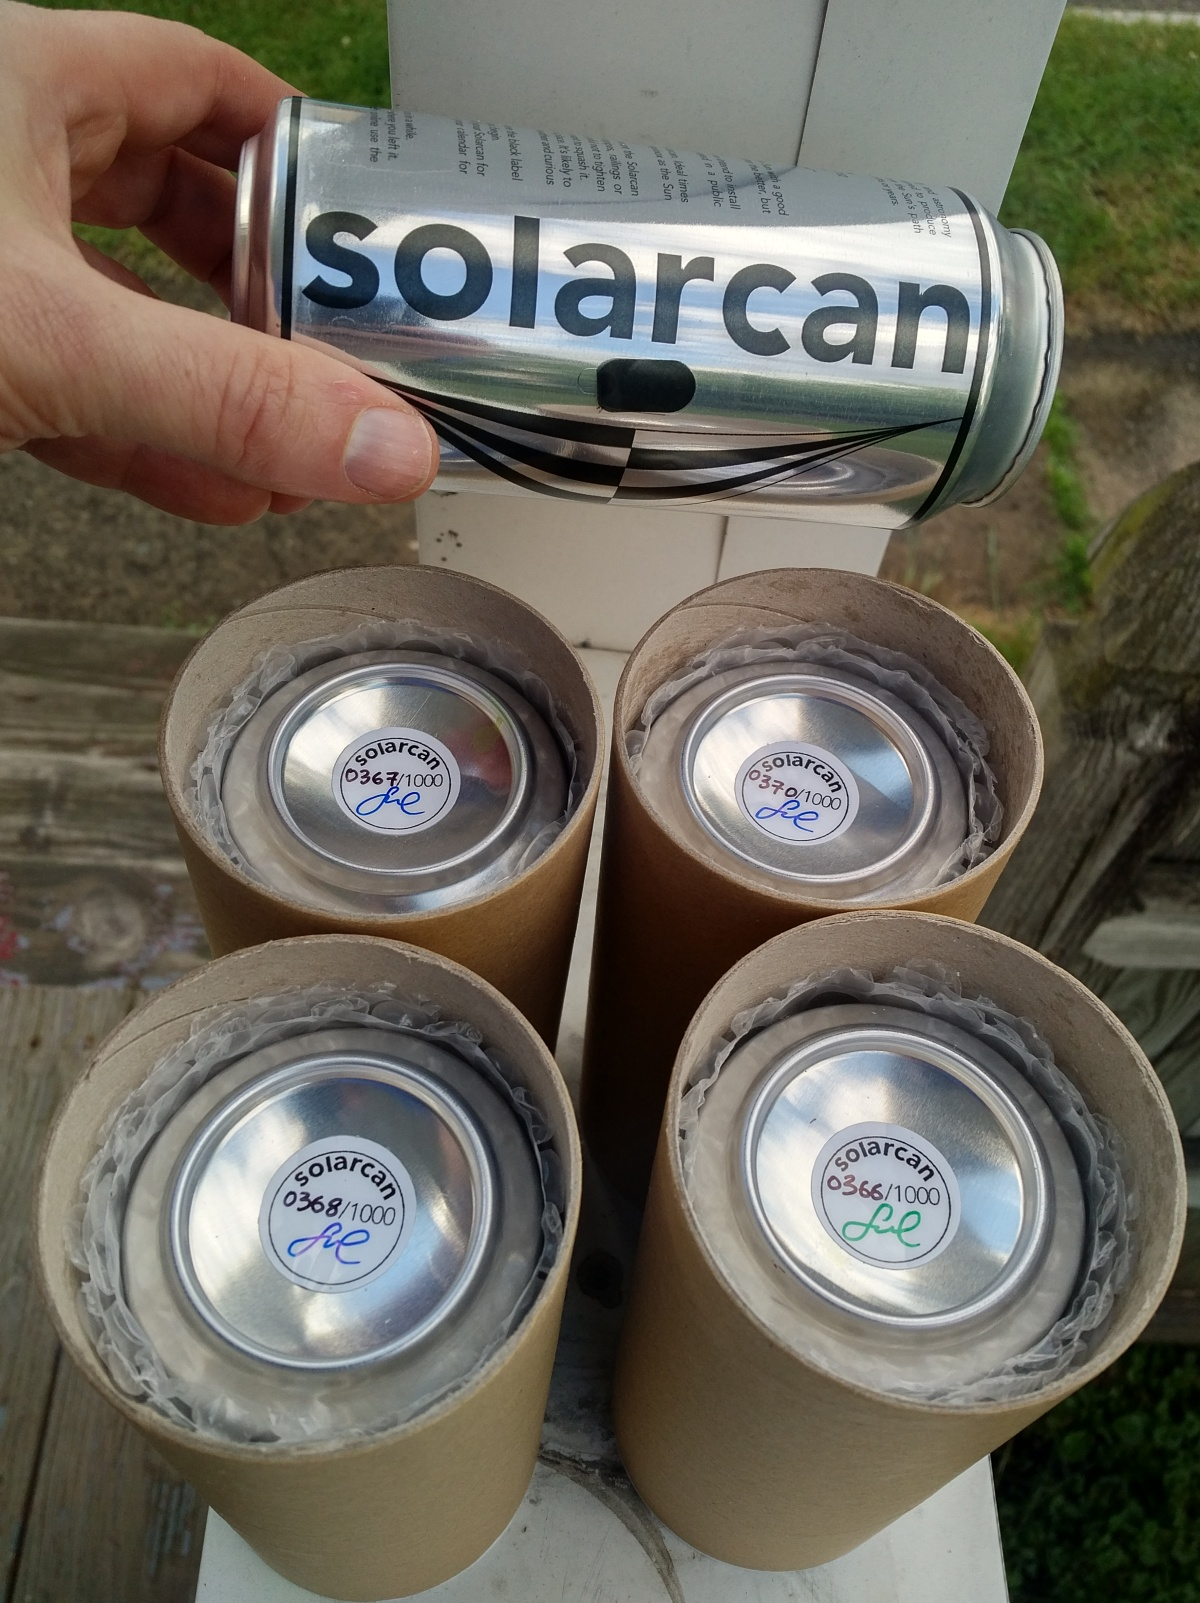 The Contents of Solarcan#367